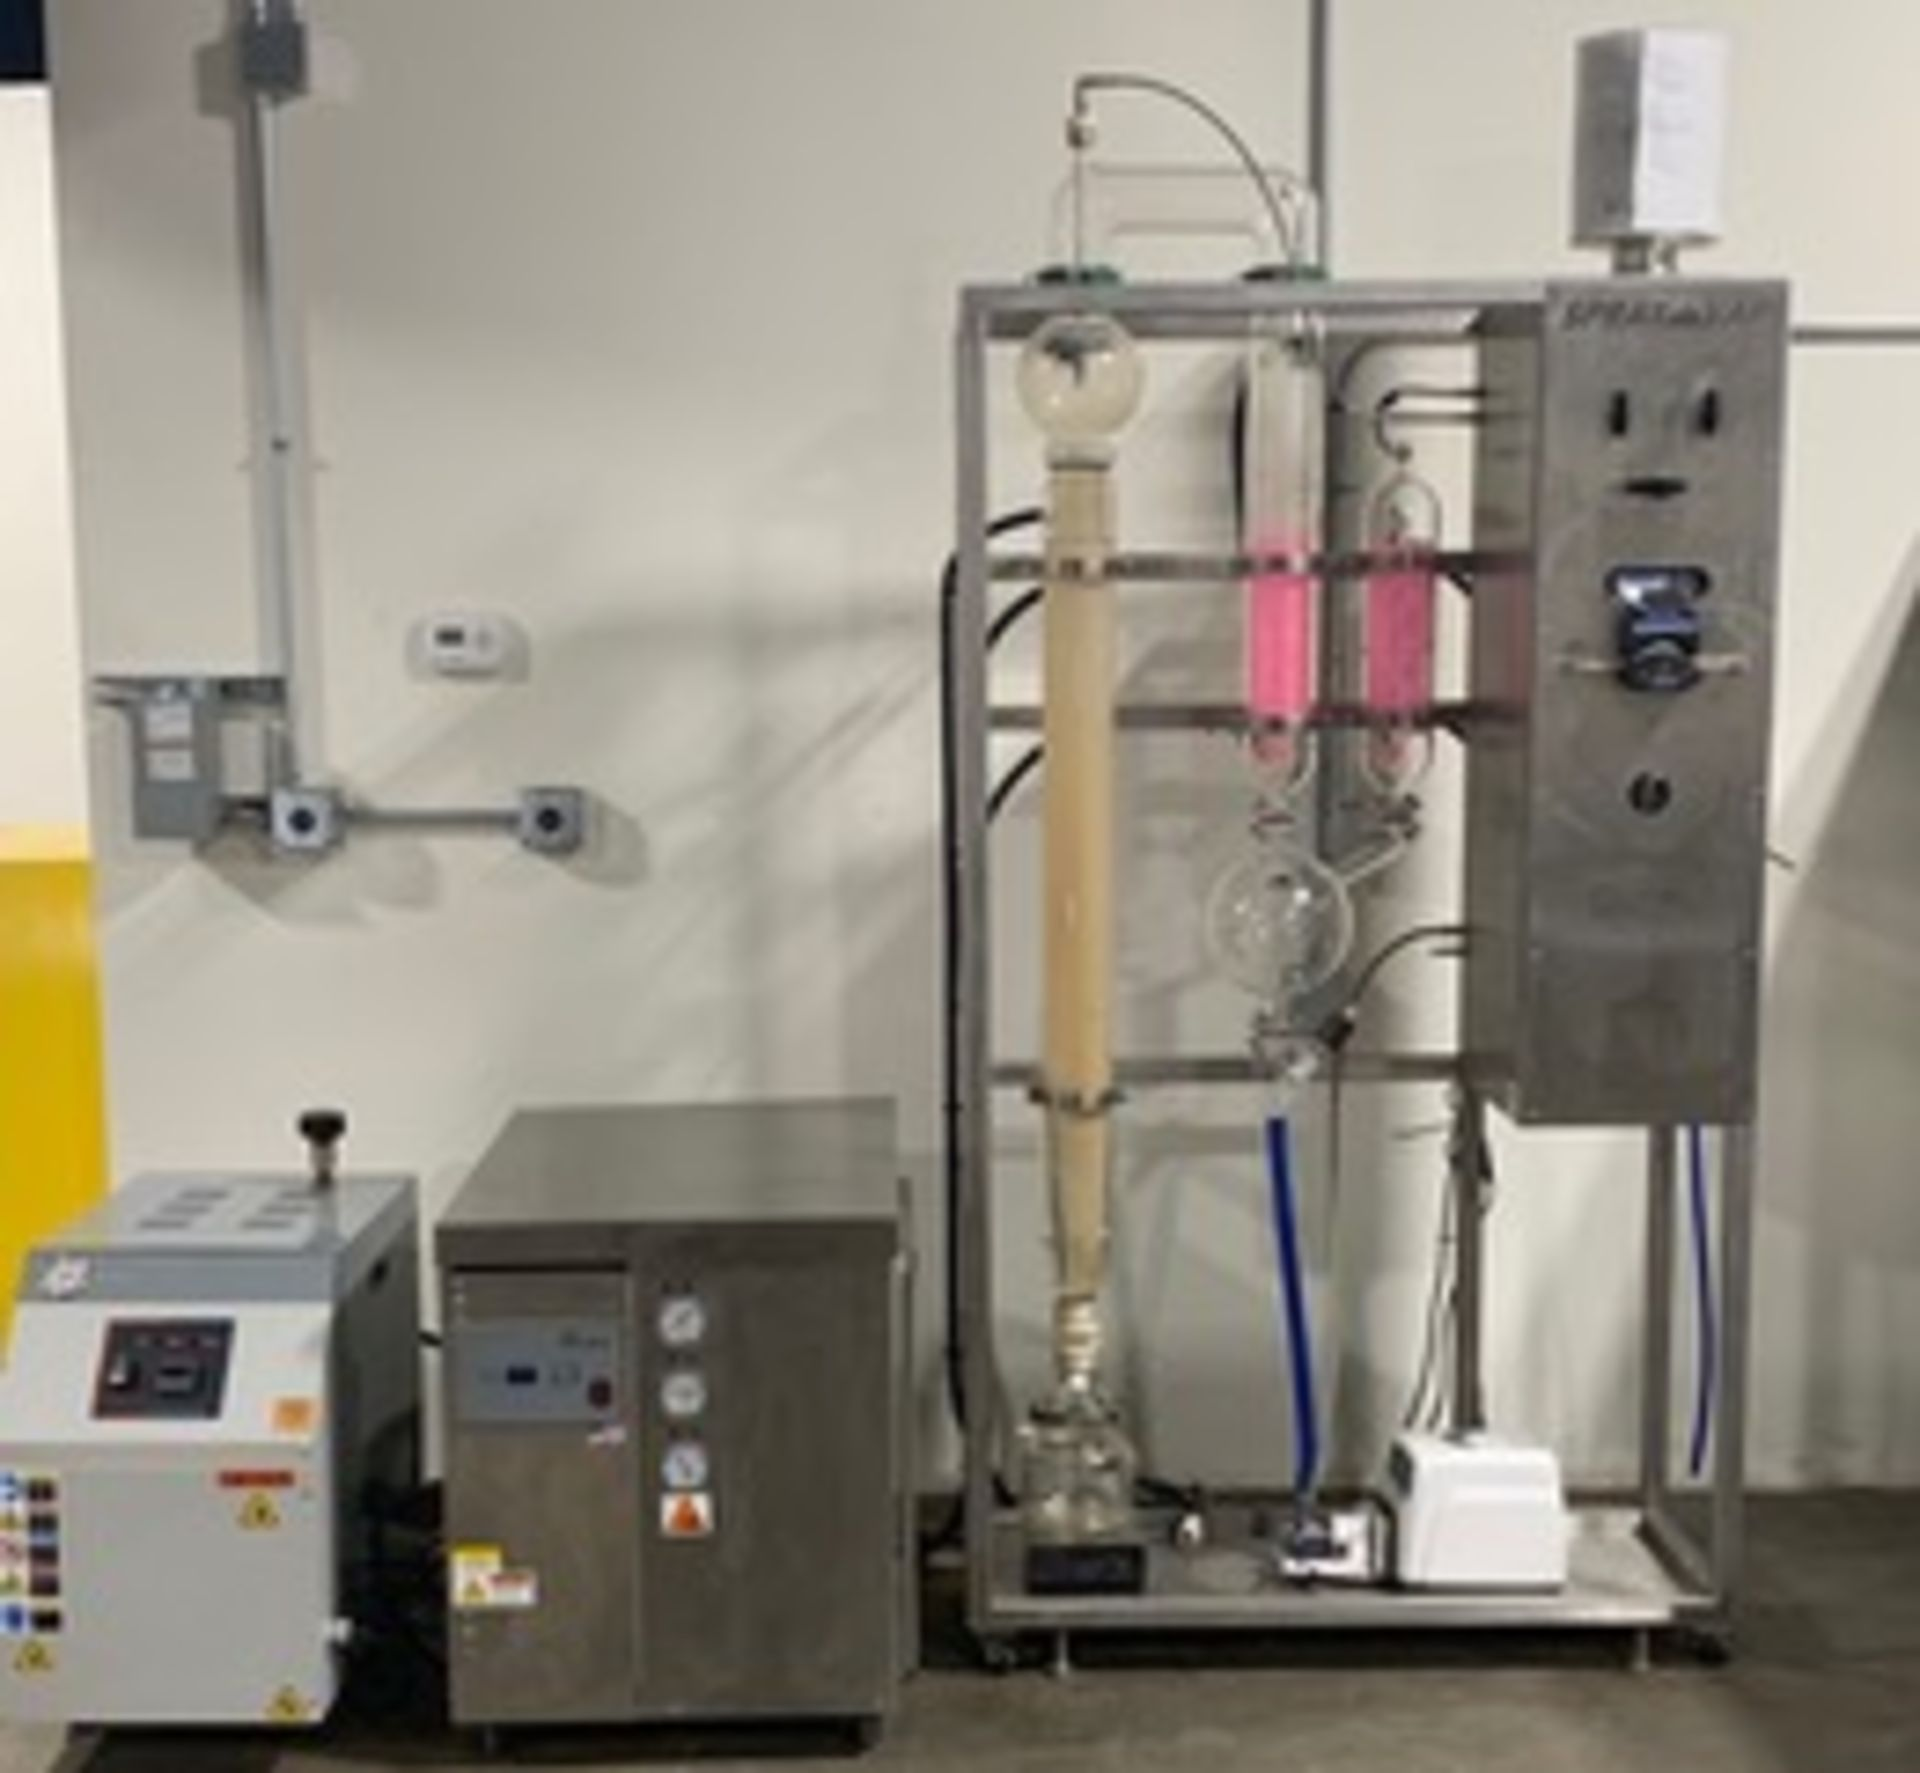 Used-Colorado Extraction Systems SprayVap System w/TripleXtract System. Model SV20. - Image 4 of 27